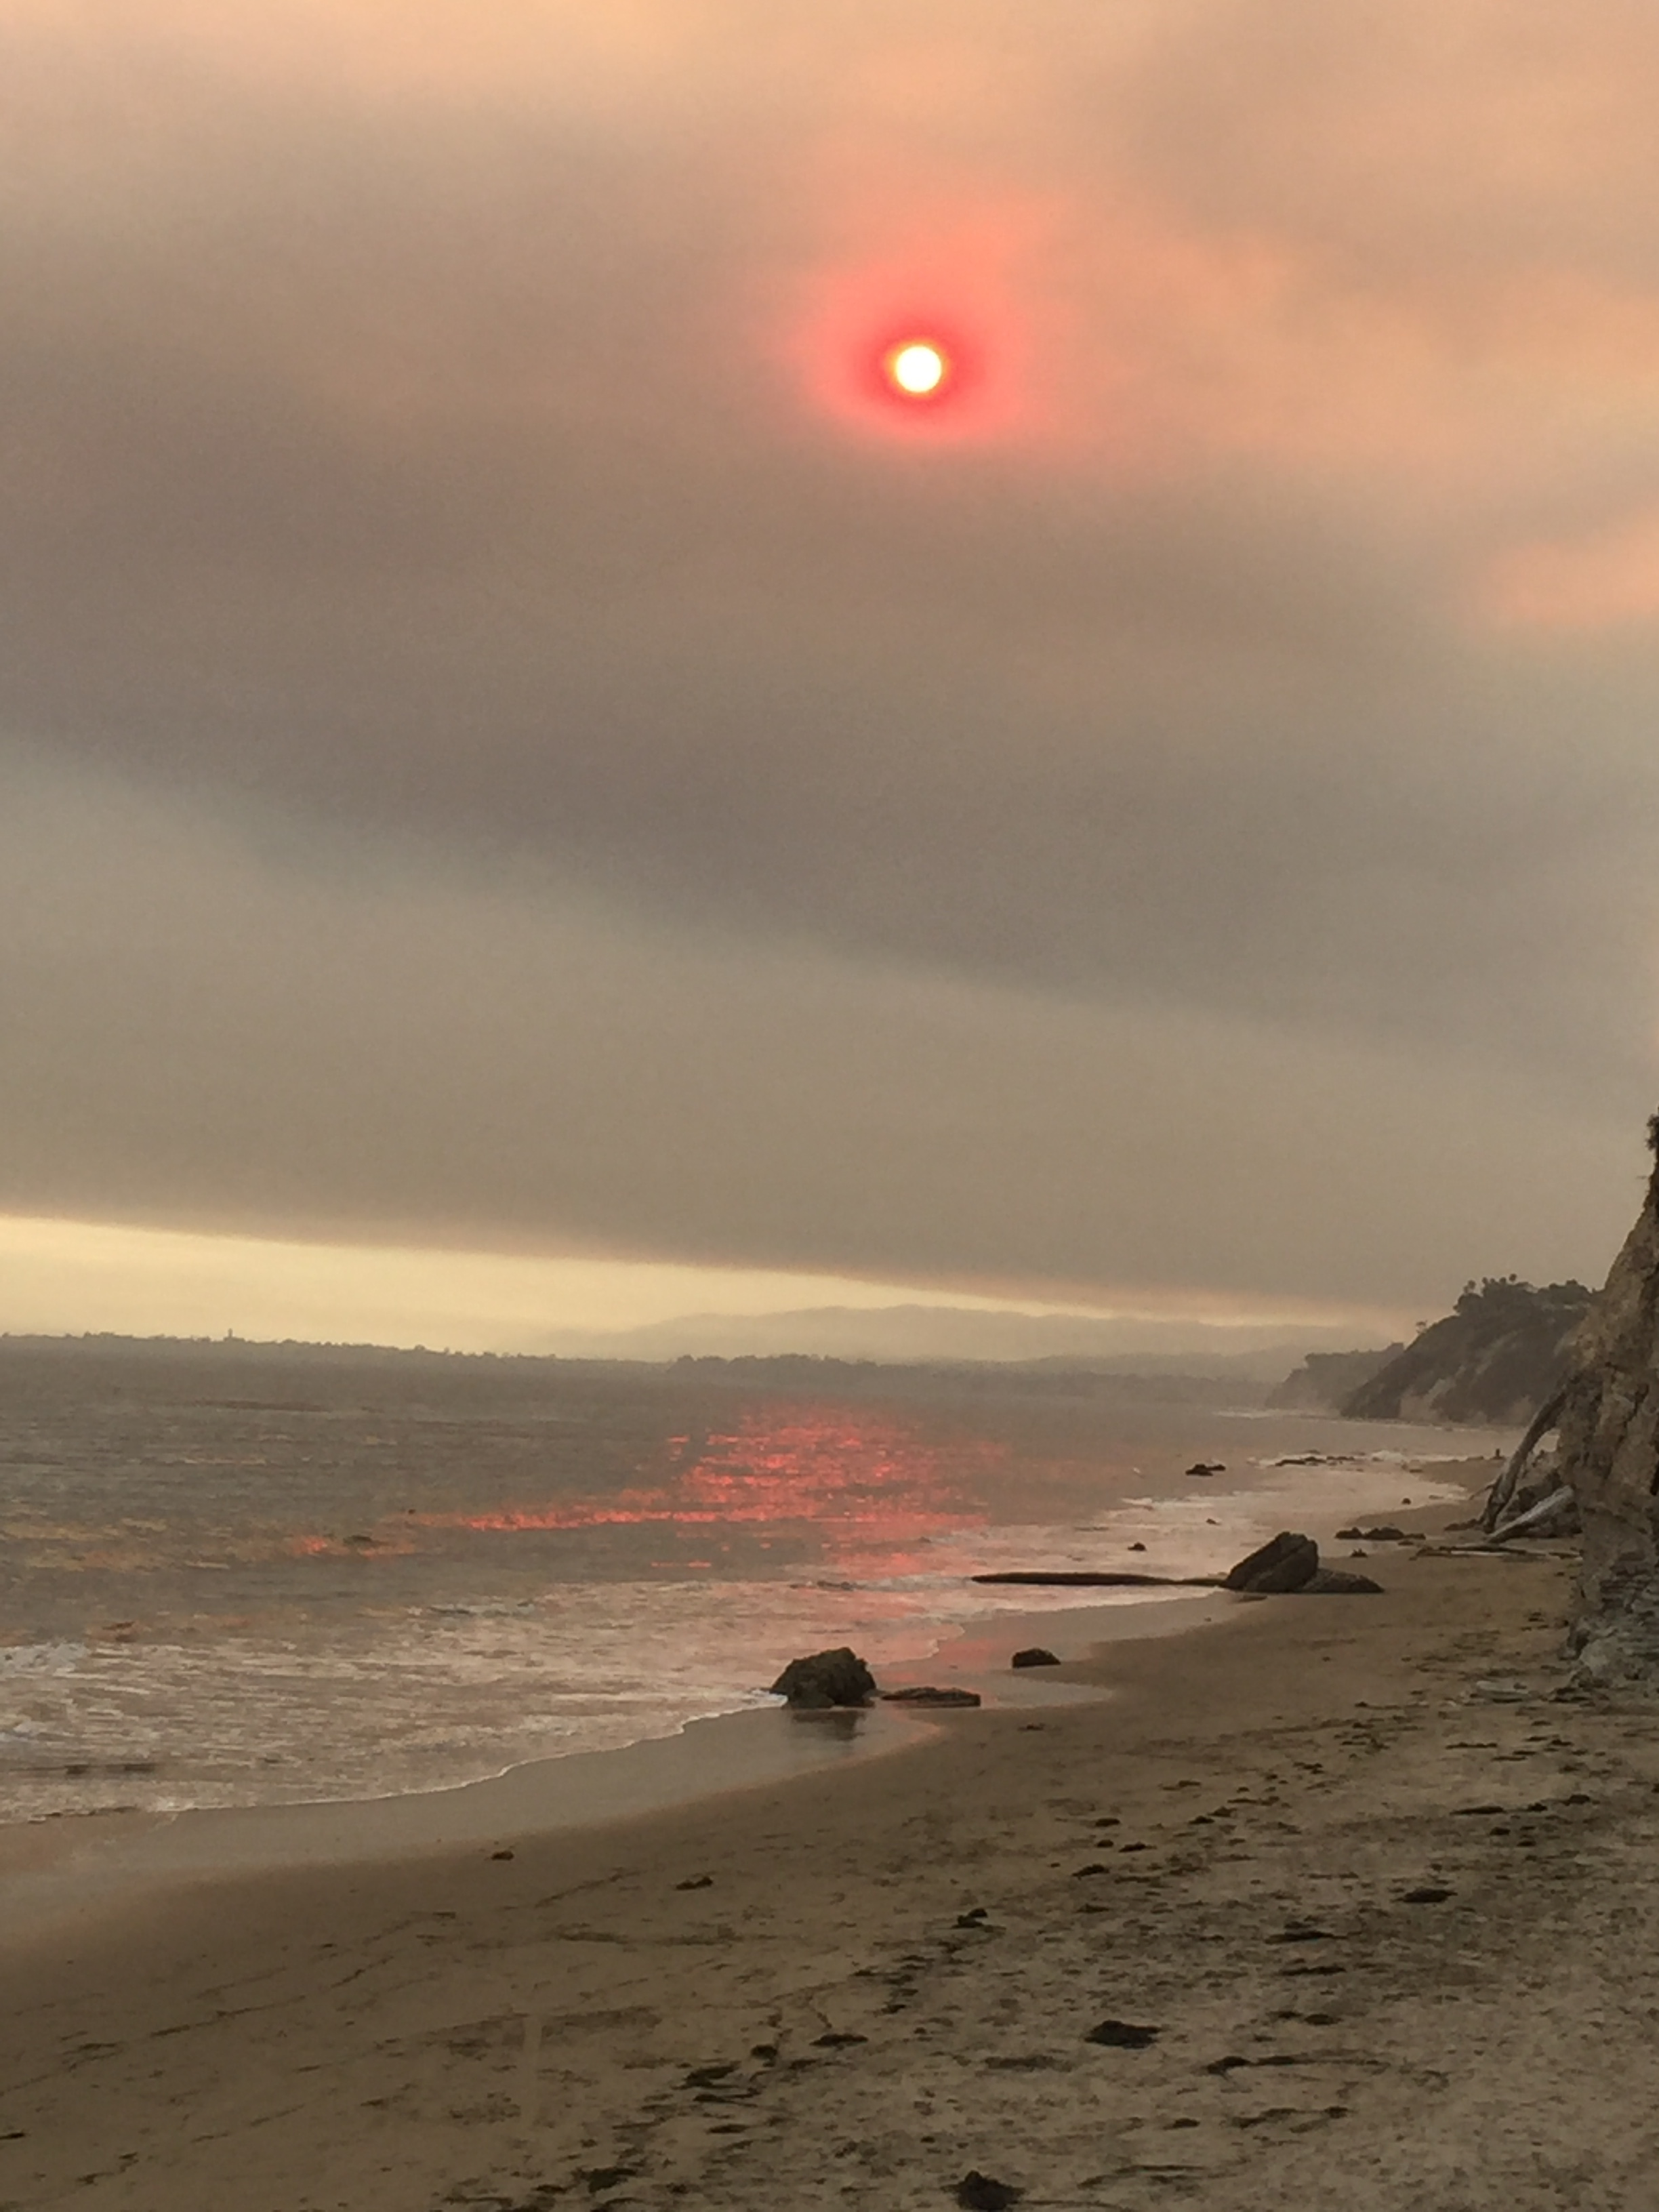 Smokey View of the Sun at the Beach | Weather Picture of the Day